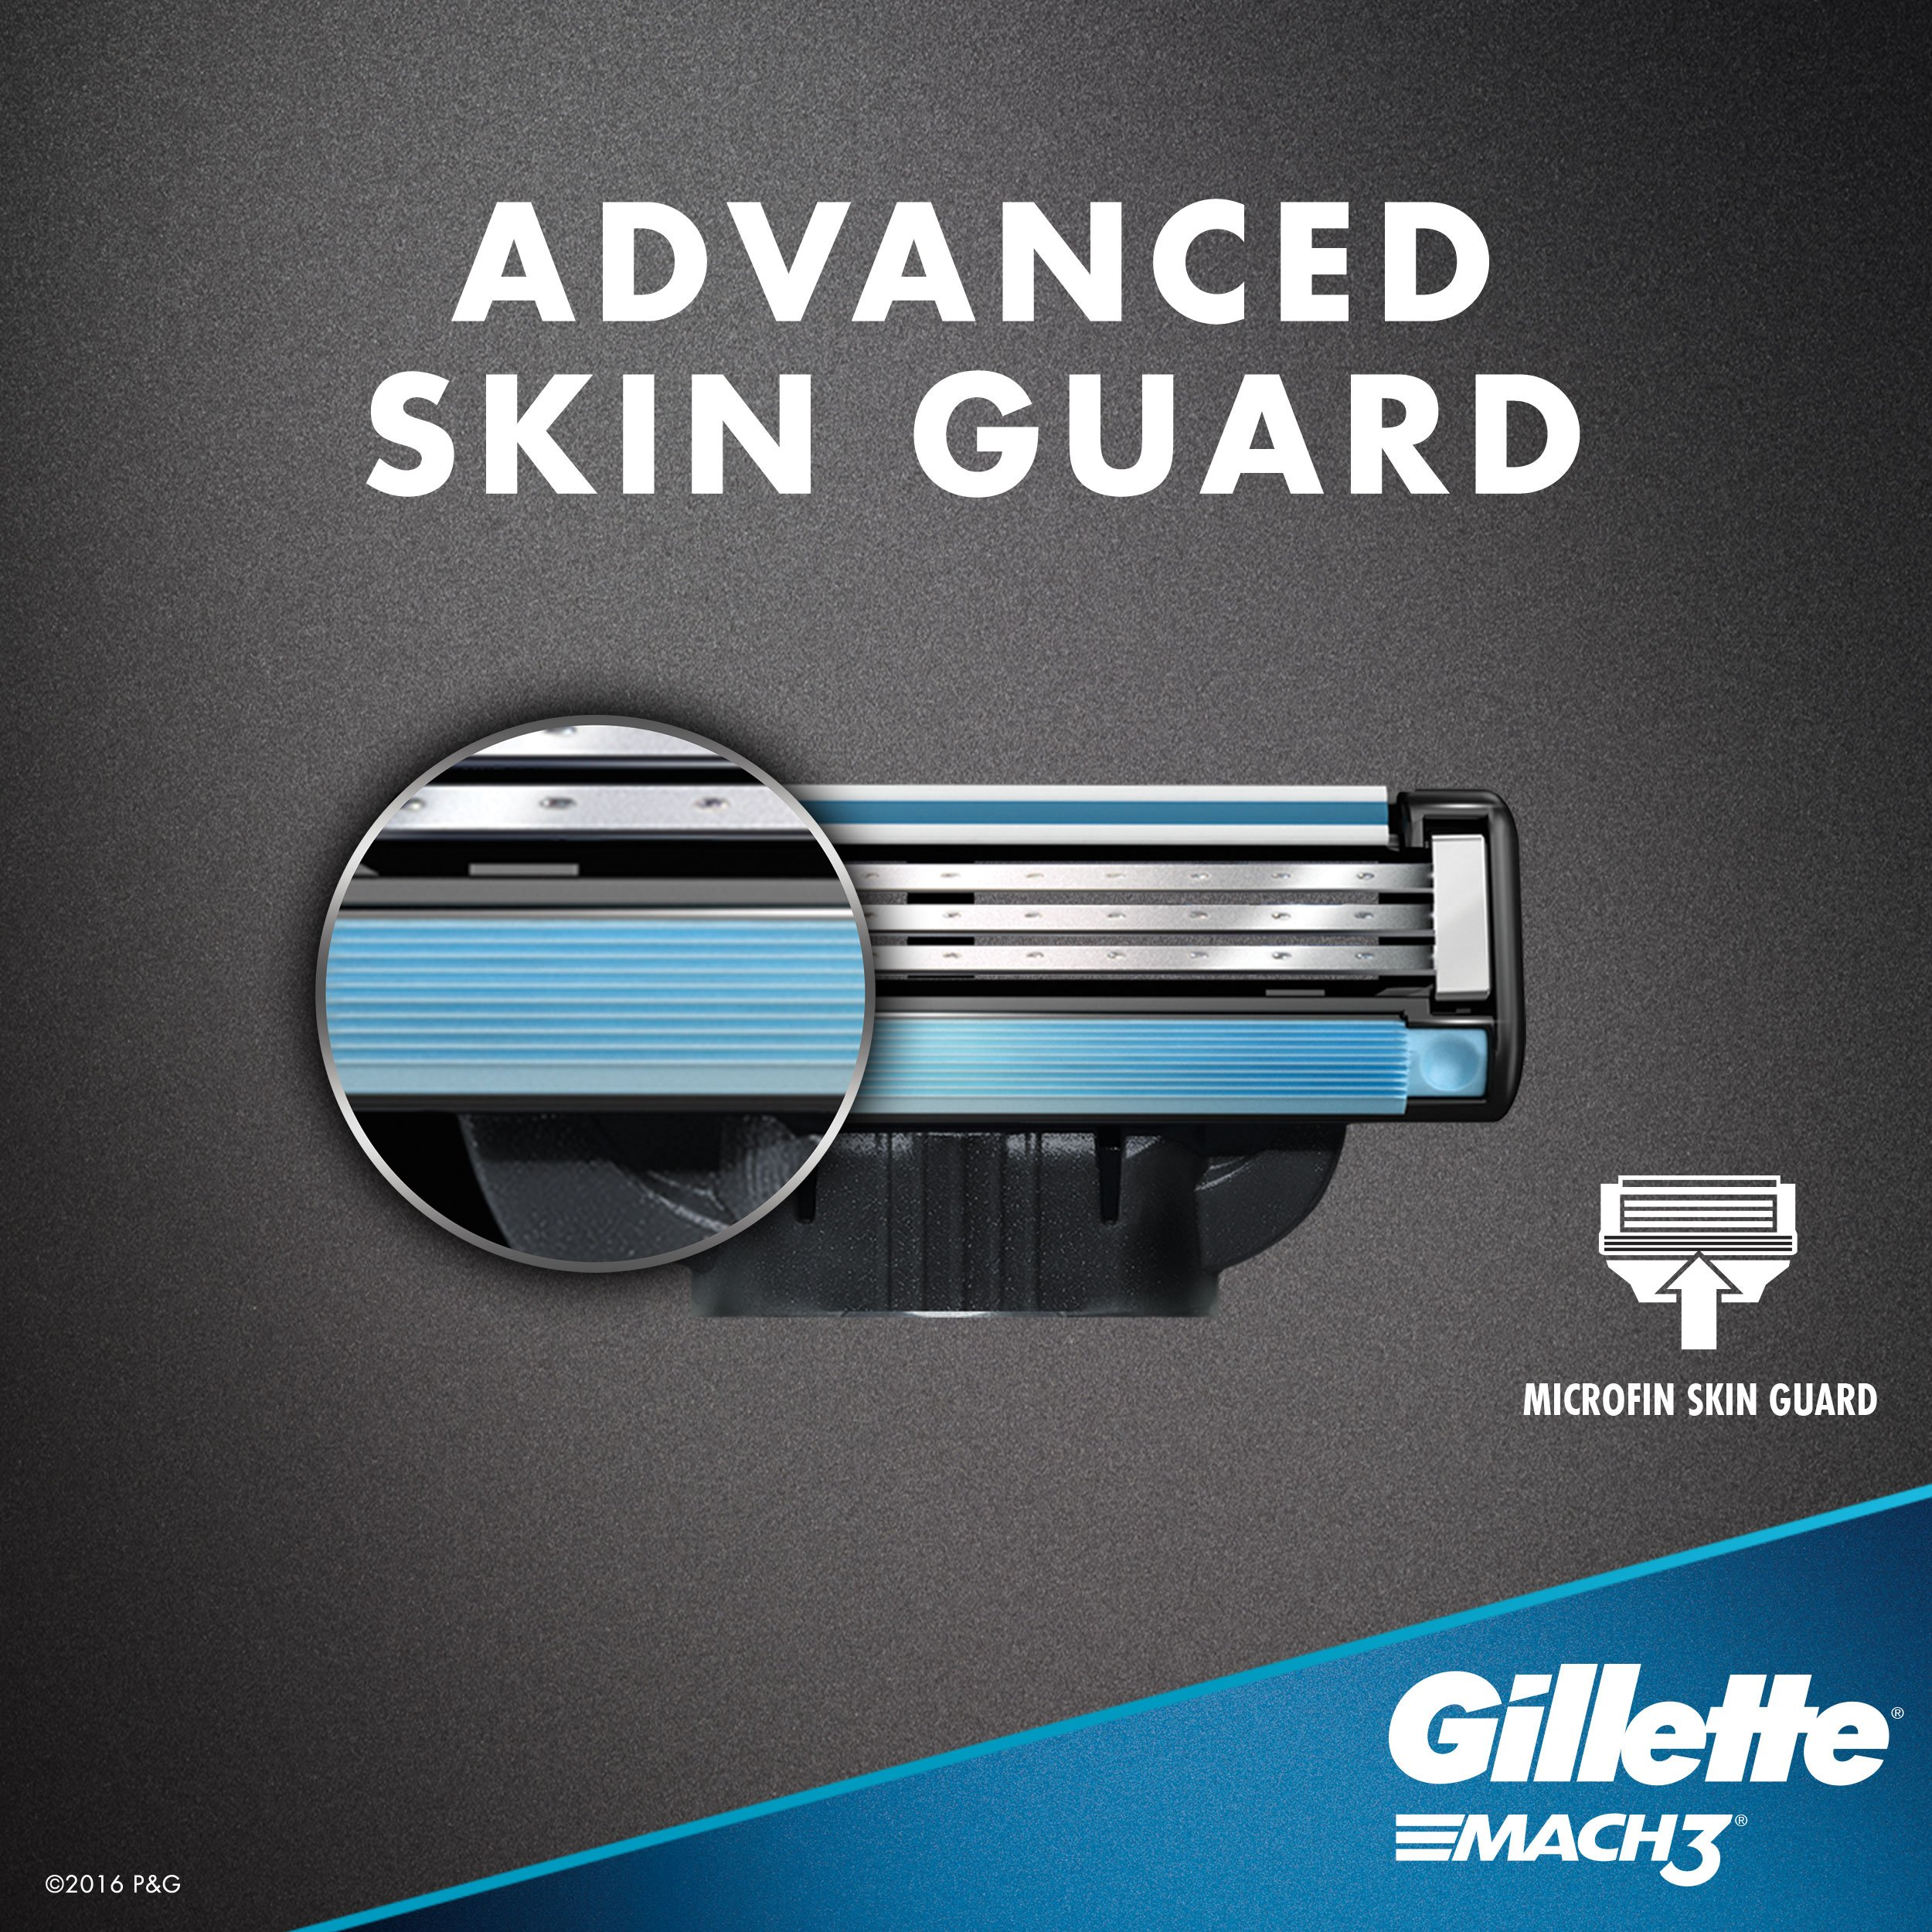 Gillette Mach3 Men's Razor Blades, 8 Blade Refills (Packaging May Vary) by Gillette (Image #6)